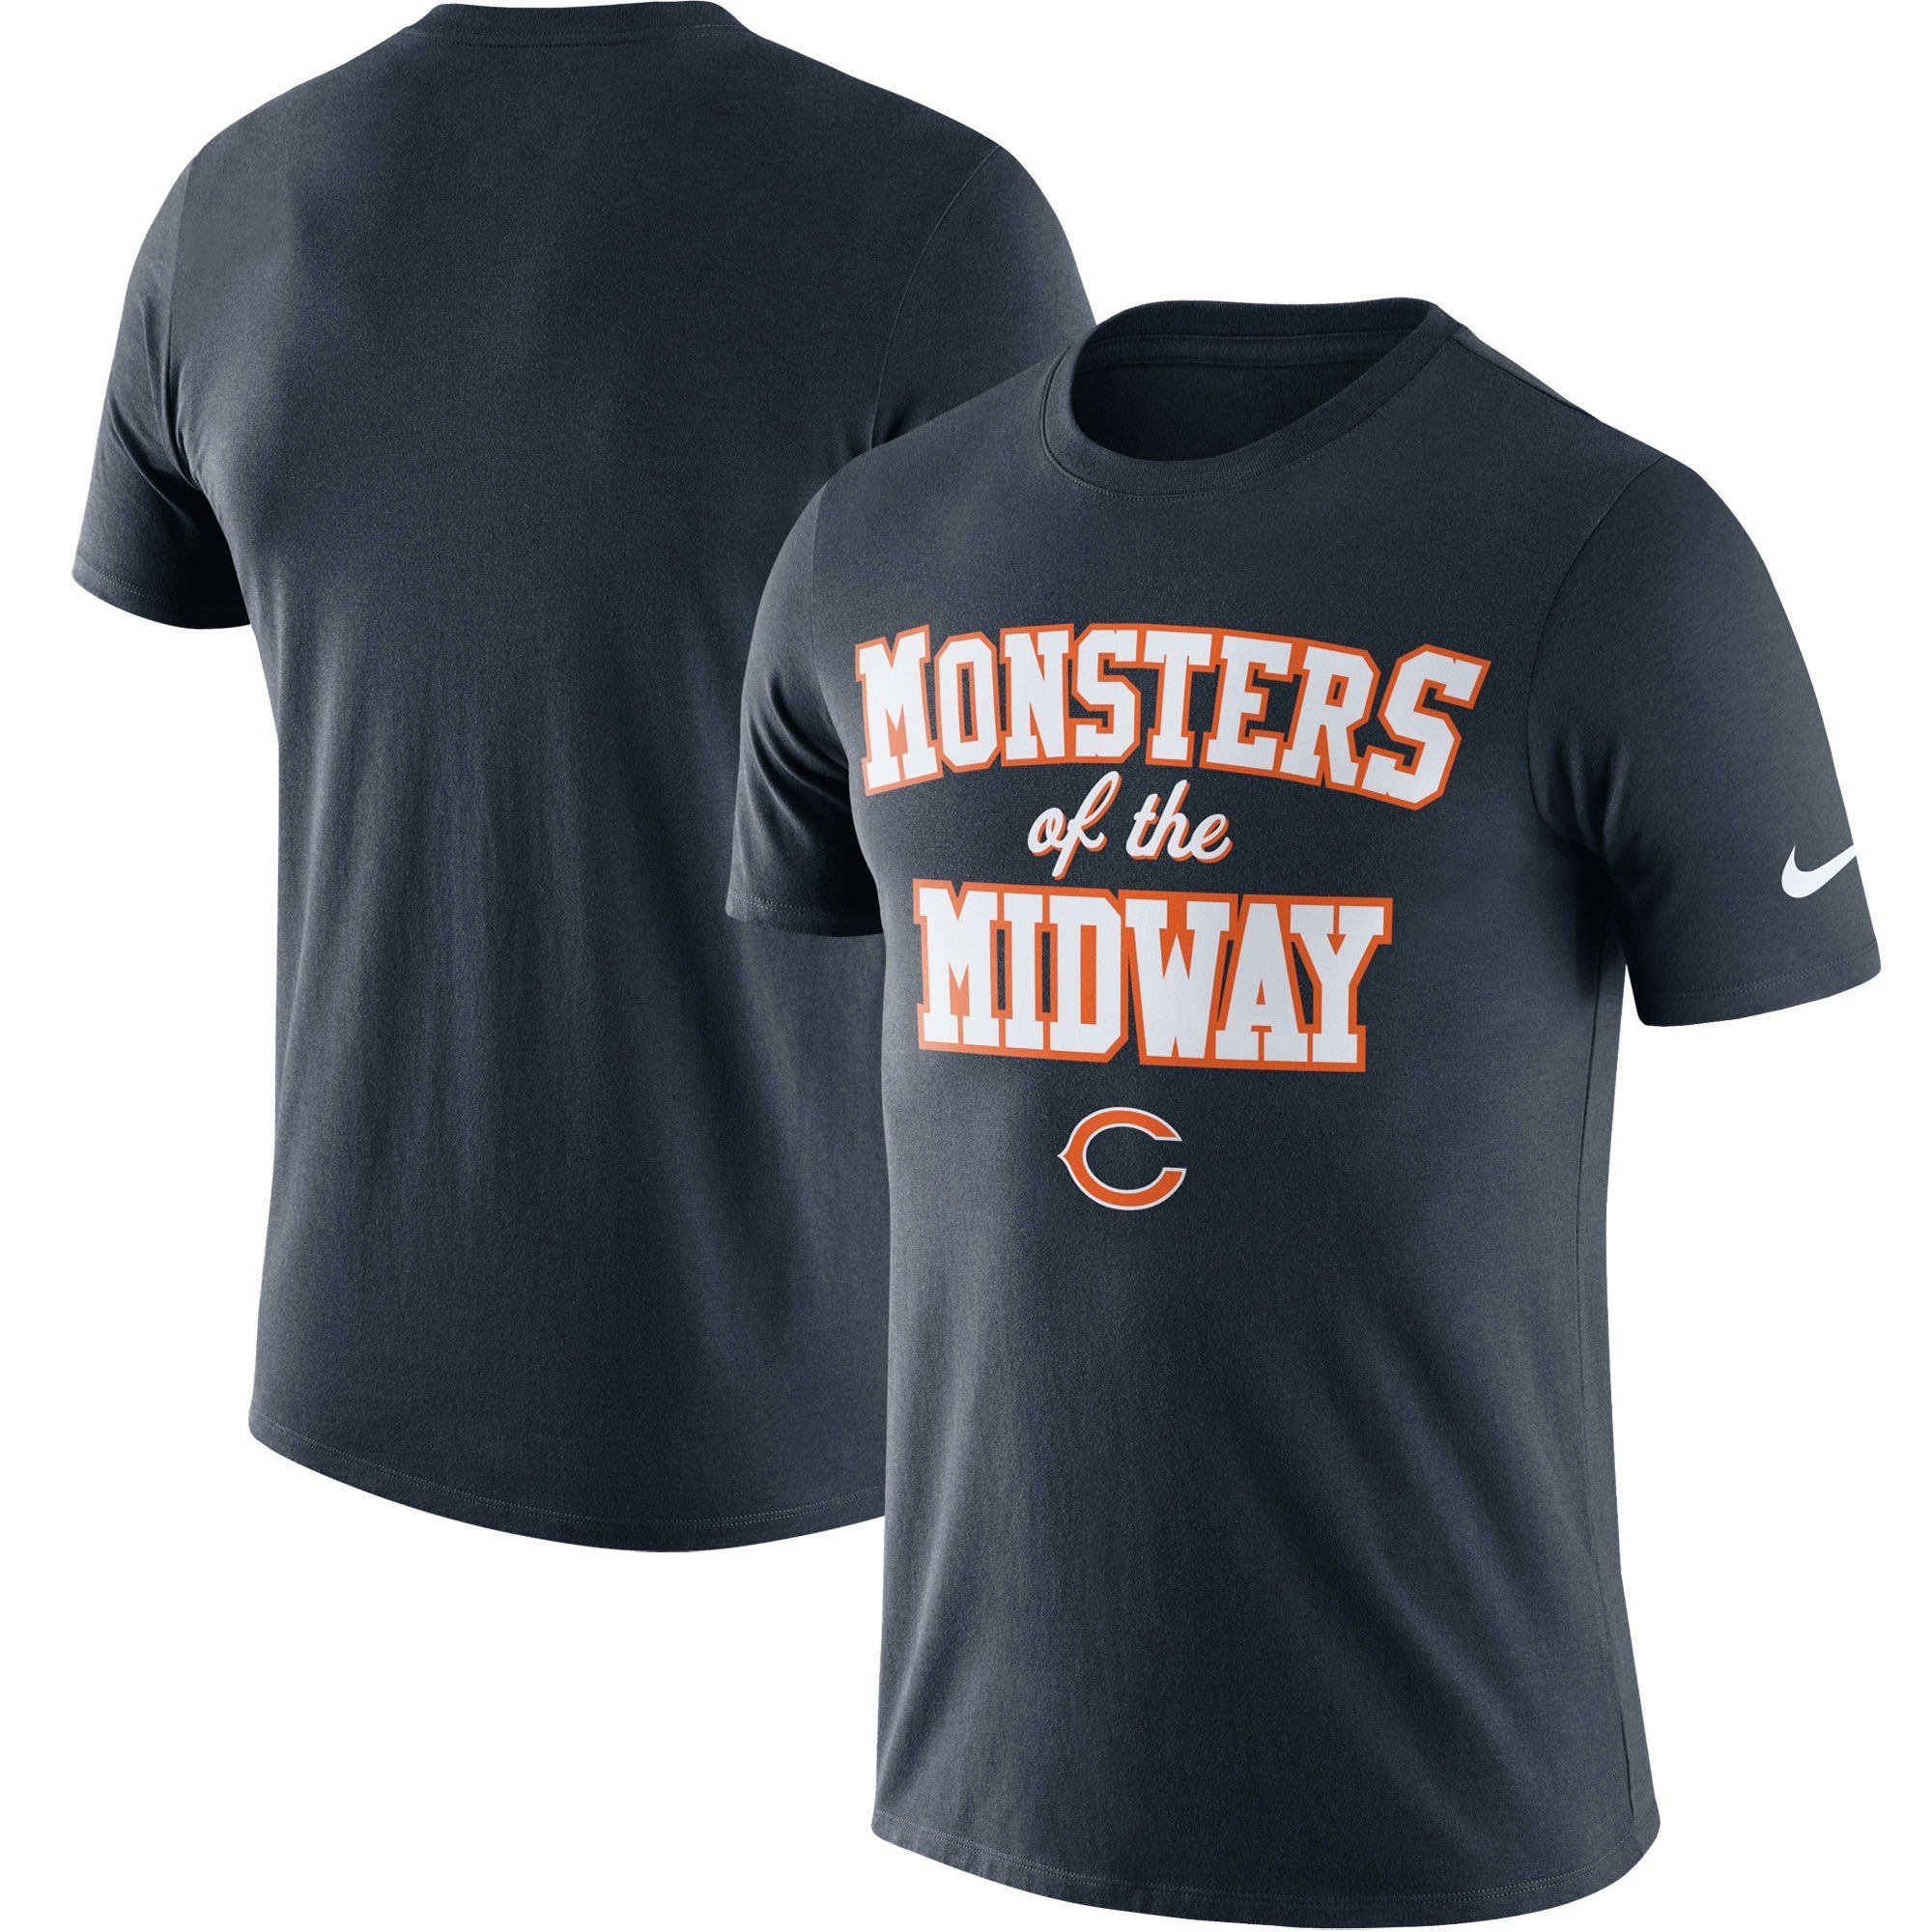 low priced dbd3a 18dc3 Mens NFL Chicago Bears